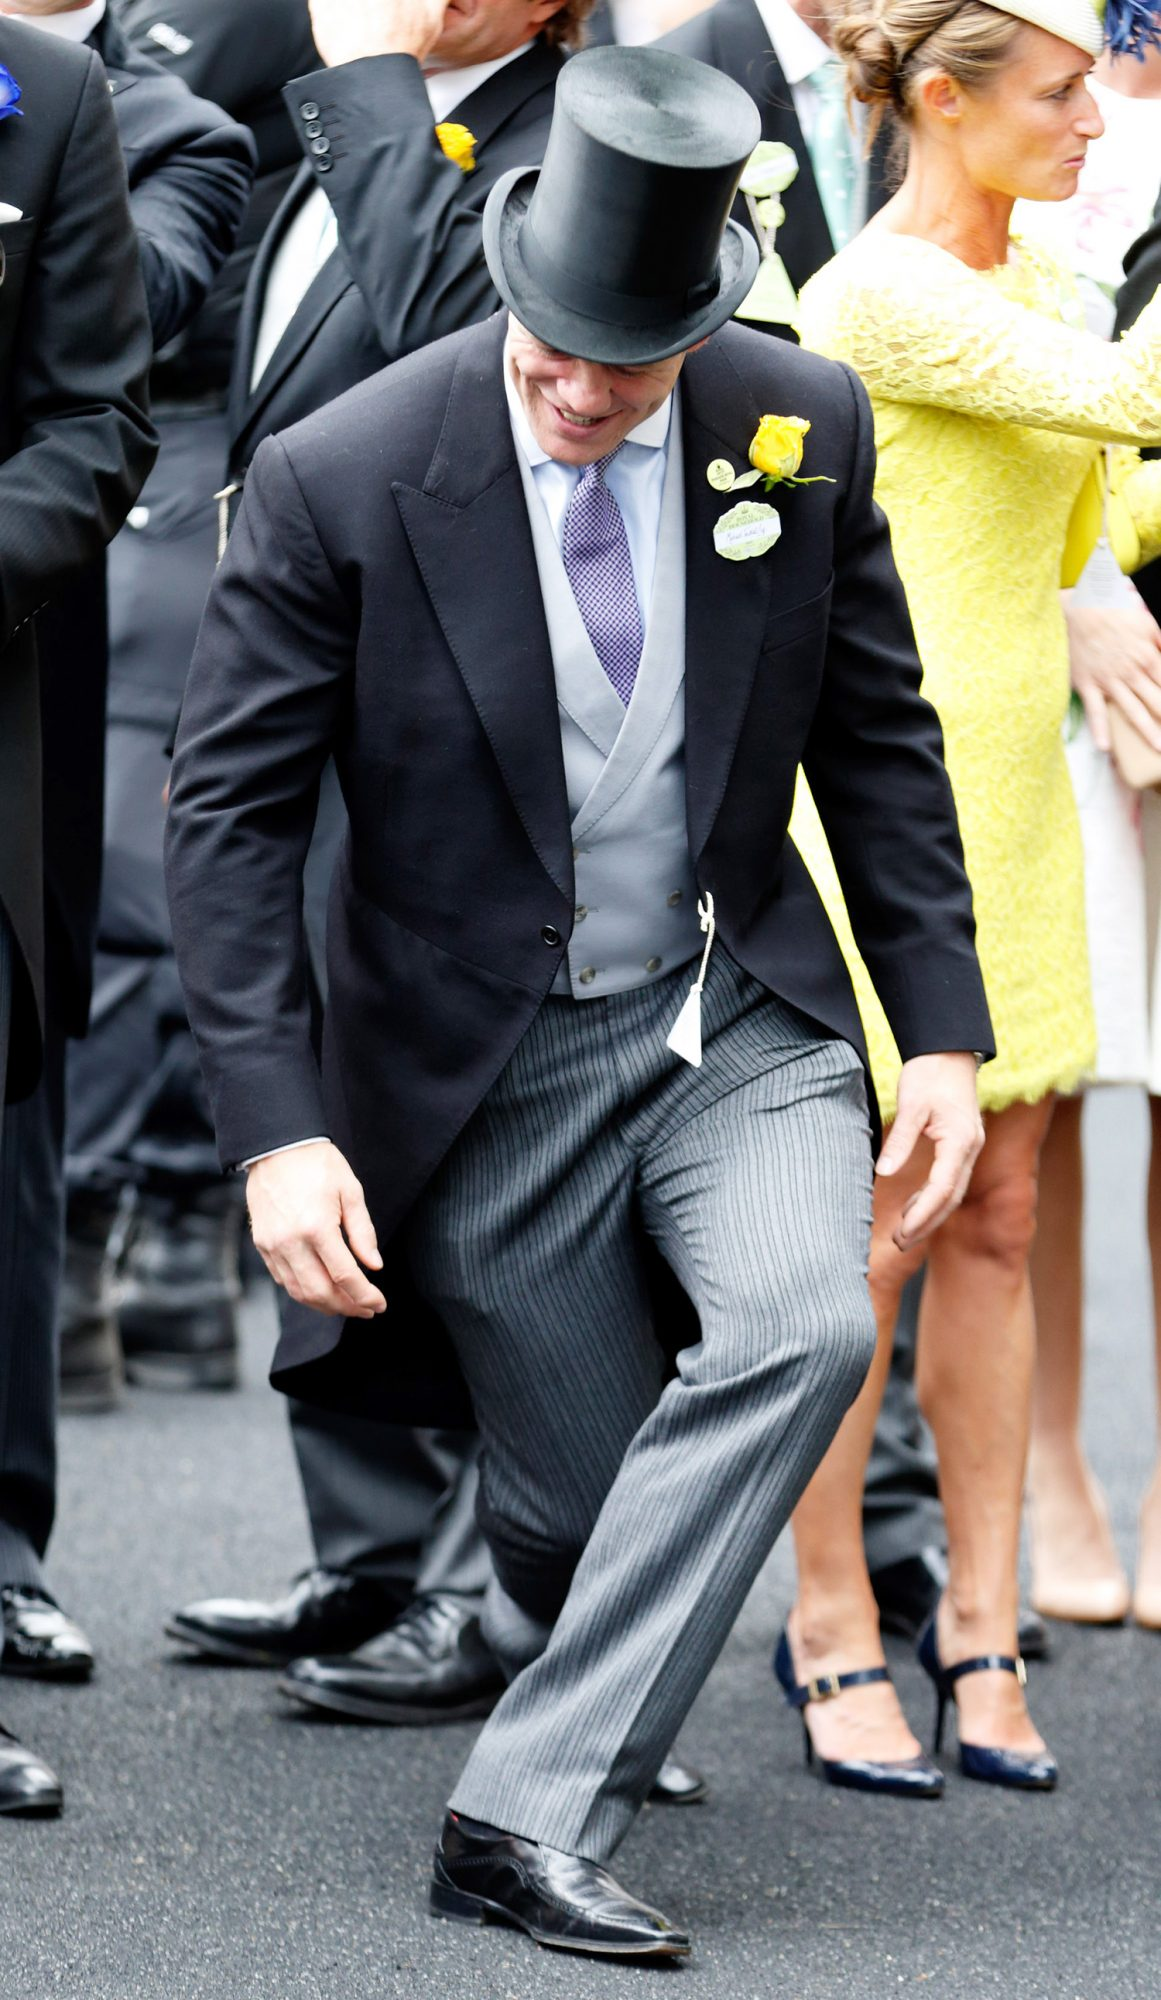 Mike Tindall attempts a curtsey as he attends day 1 of Royal Ascot at Ascot Racecourse on June 16, 2015 in Ascot, England